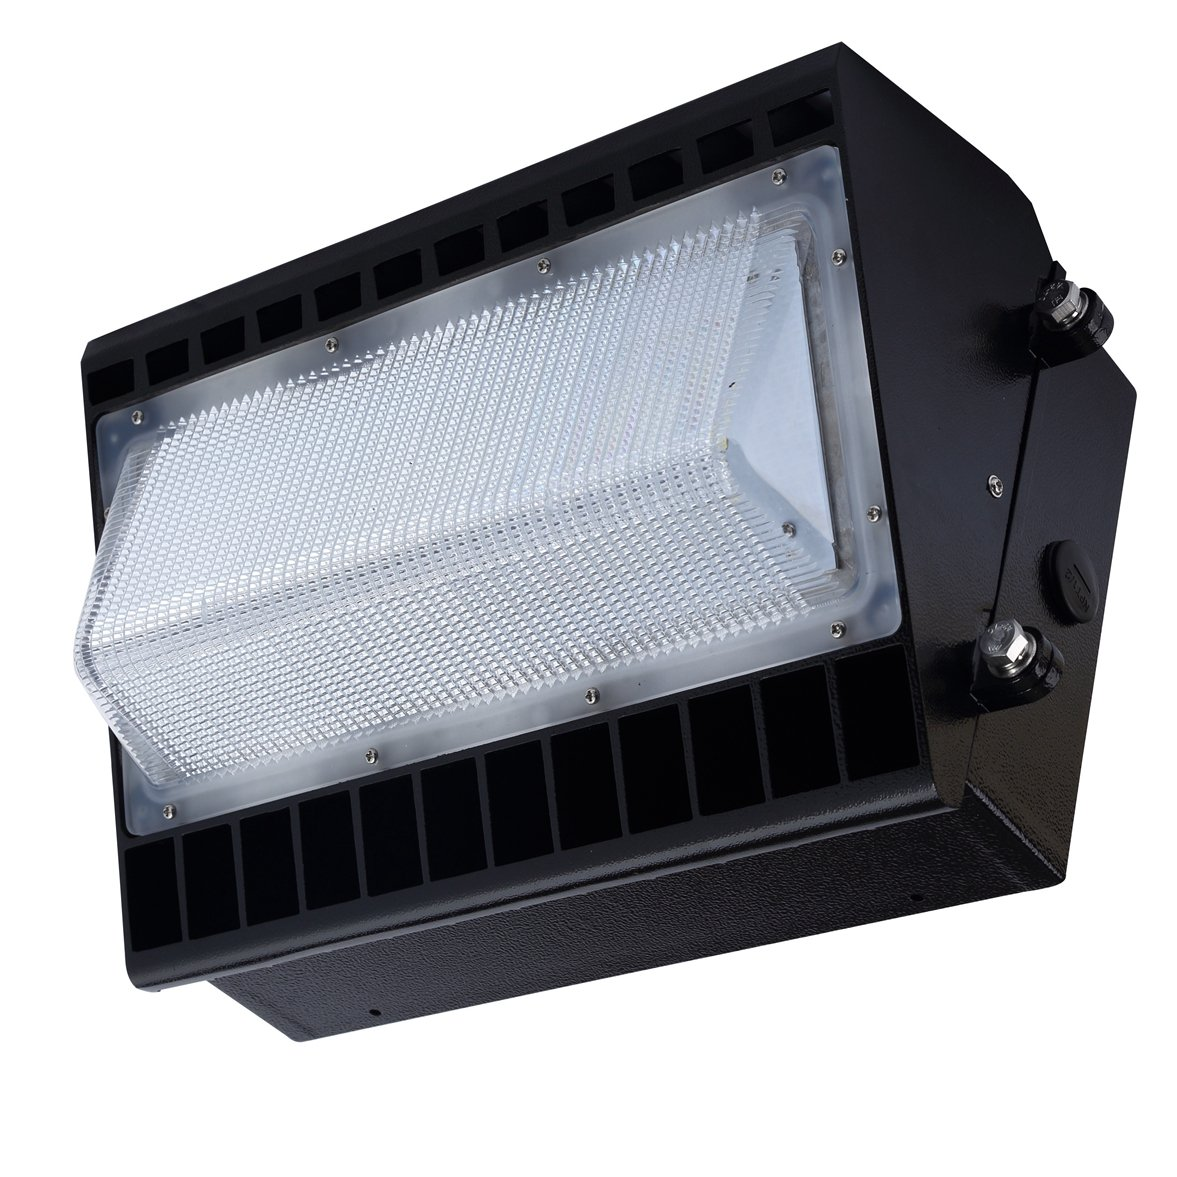 Docheer150W LED Wall Pack Commercial Light 16500 Lumen 550-650 Watt HPS/HID Replacement,5000K Daylight White,Outdoor LED Wall Area lighting Industrial, Commercial, Residential Light, 5 Years Warranty